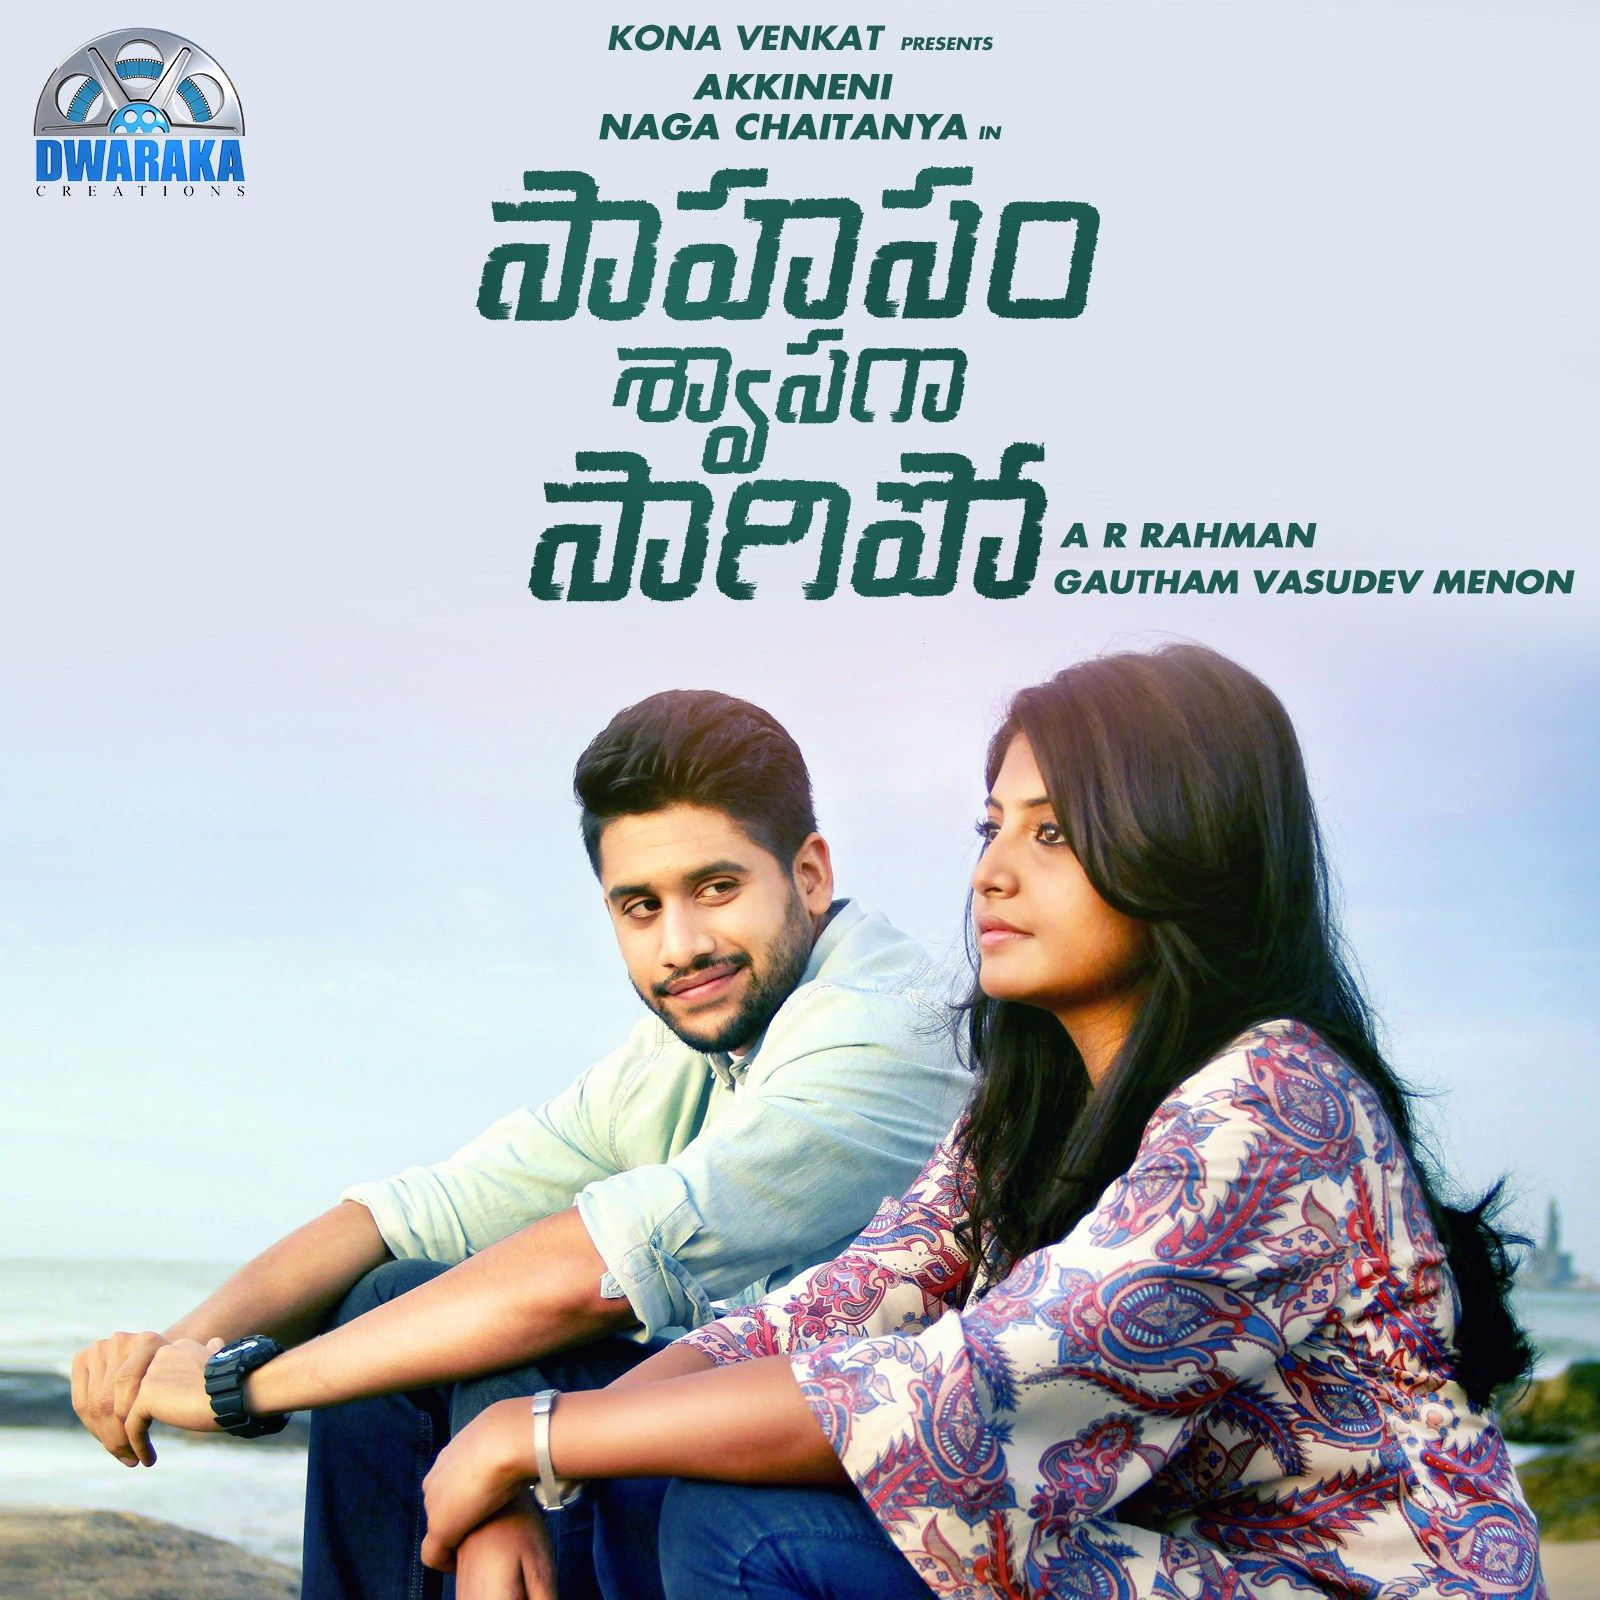 Sahasam Swasaga Sagipo 11 Nov 2016 Language Telugu Genres Action Romance Lead Actors Naga Chaitanya Manjima Full Movies Download Movies Telugu